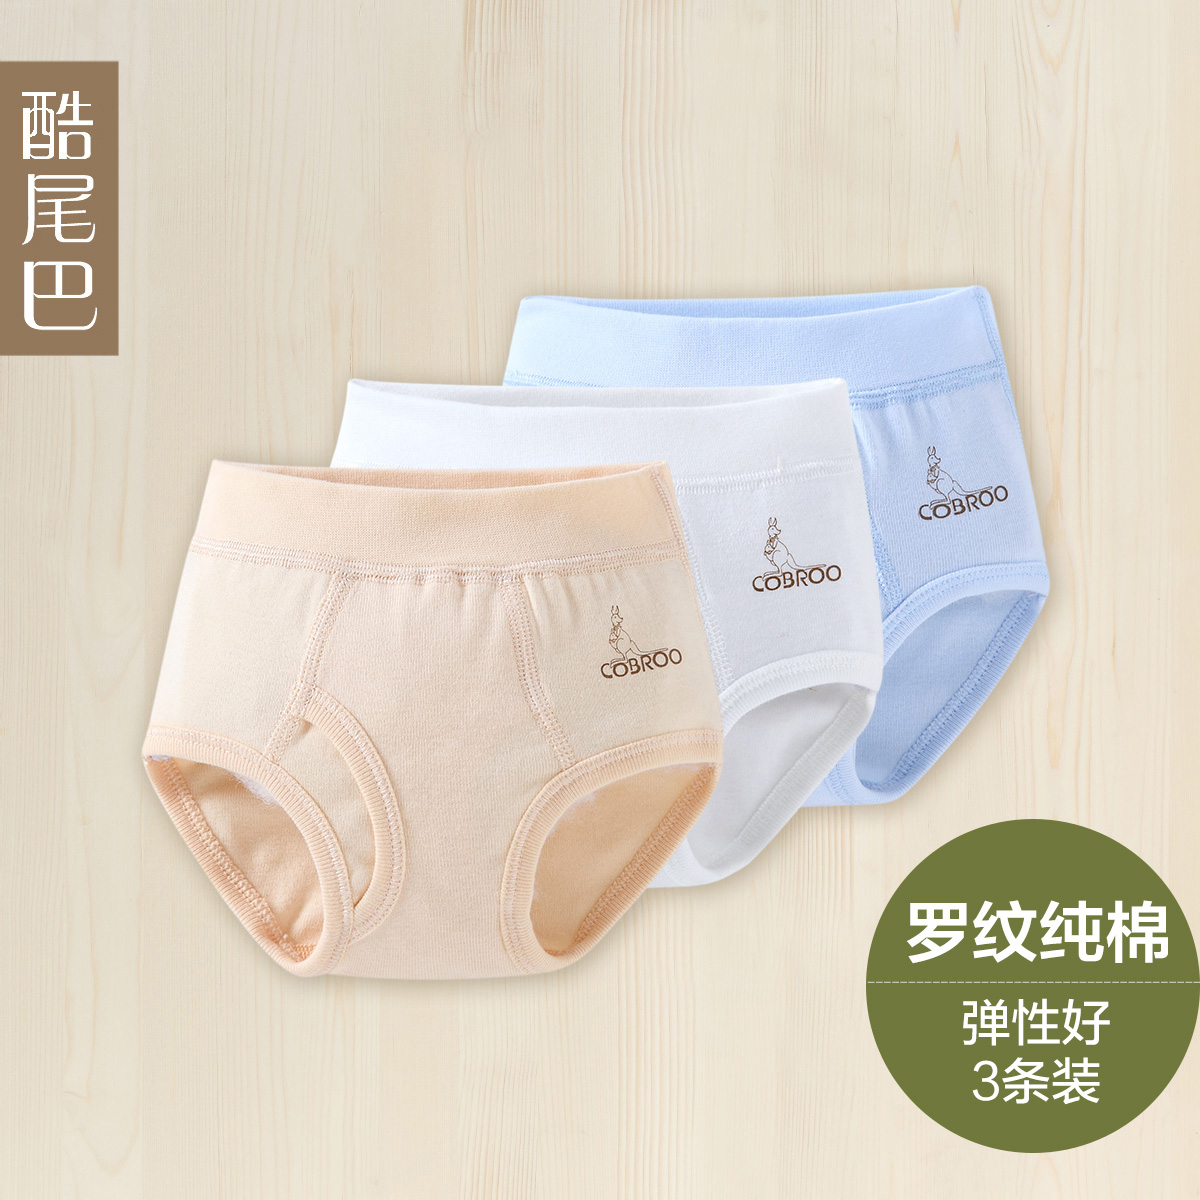 Baby cotton underwear 1-3-year-old male and female infants and young children small children's boxer briefs underwear baby underwear briefs